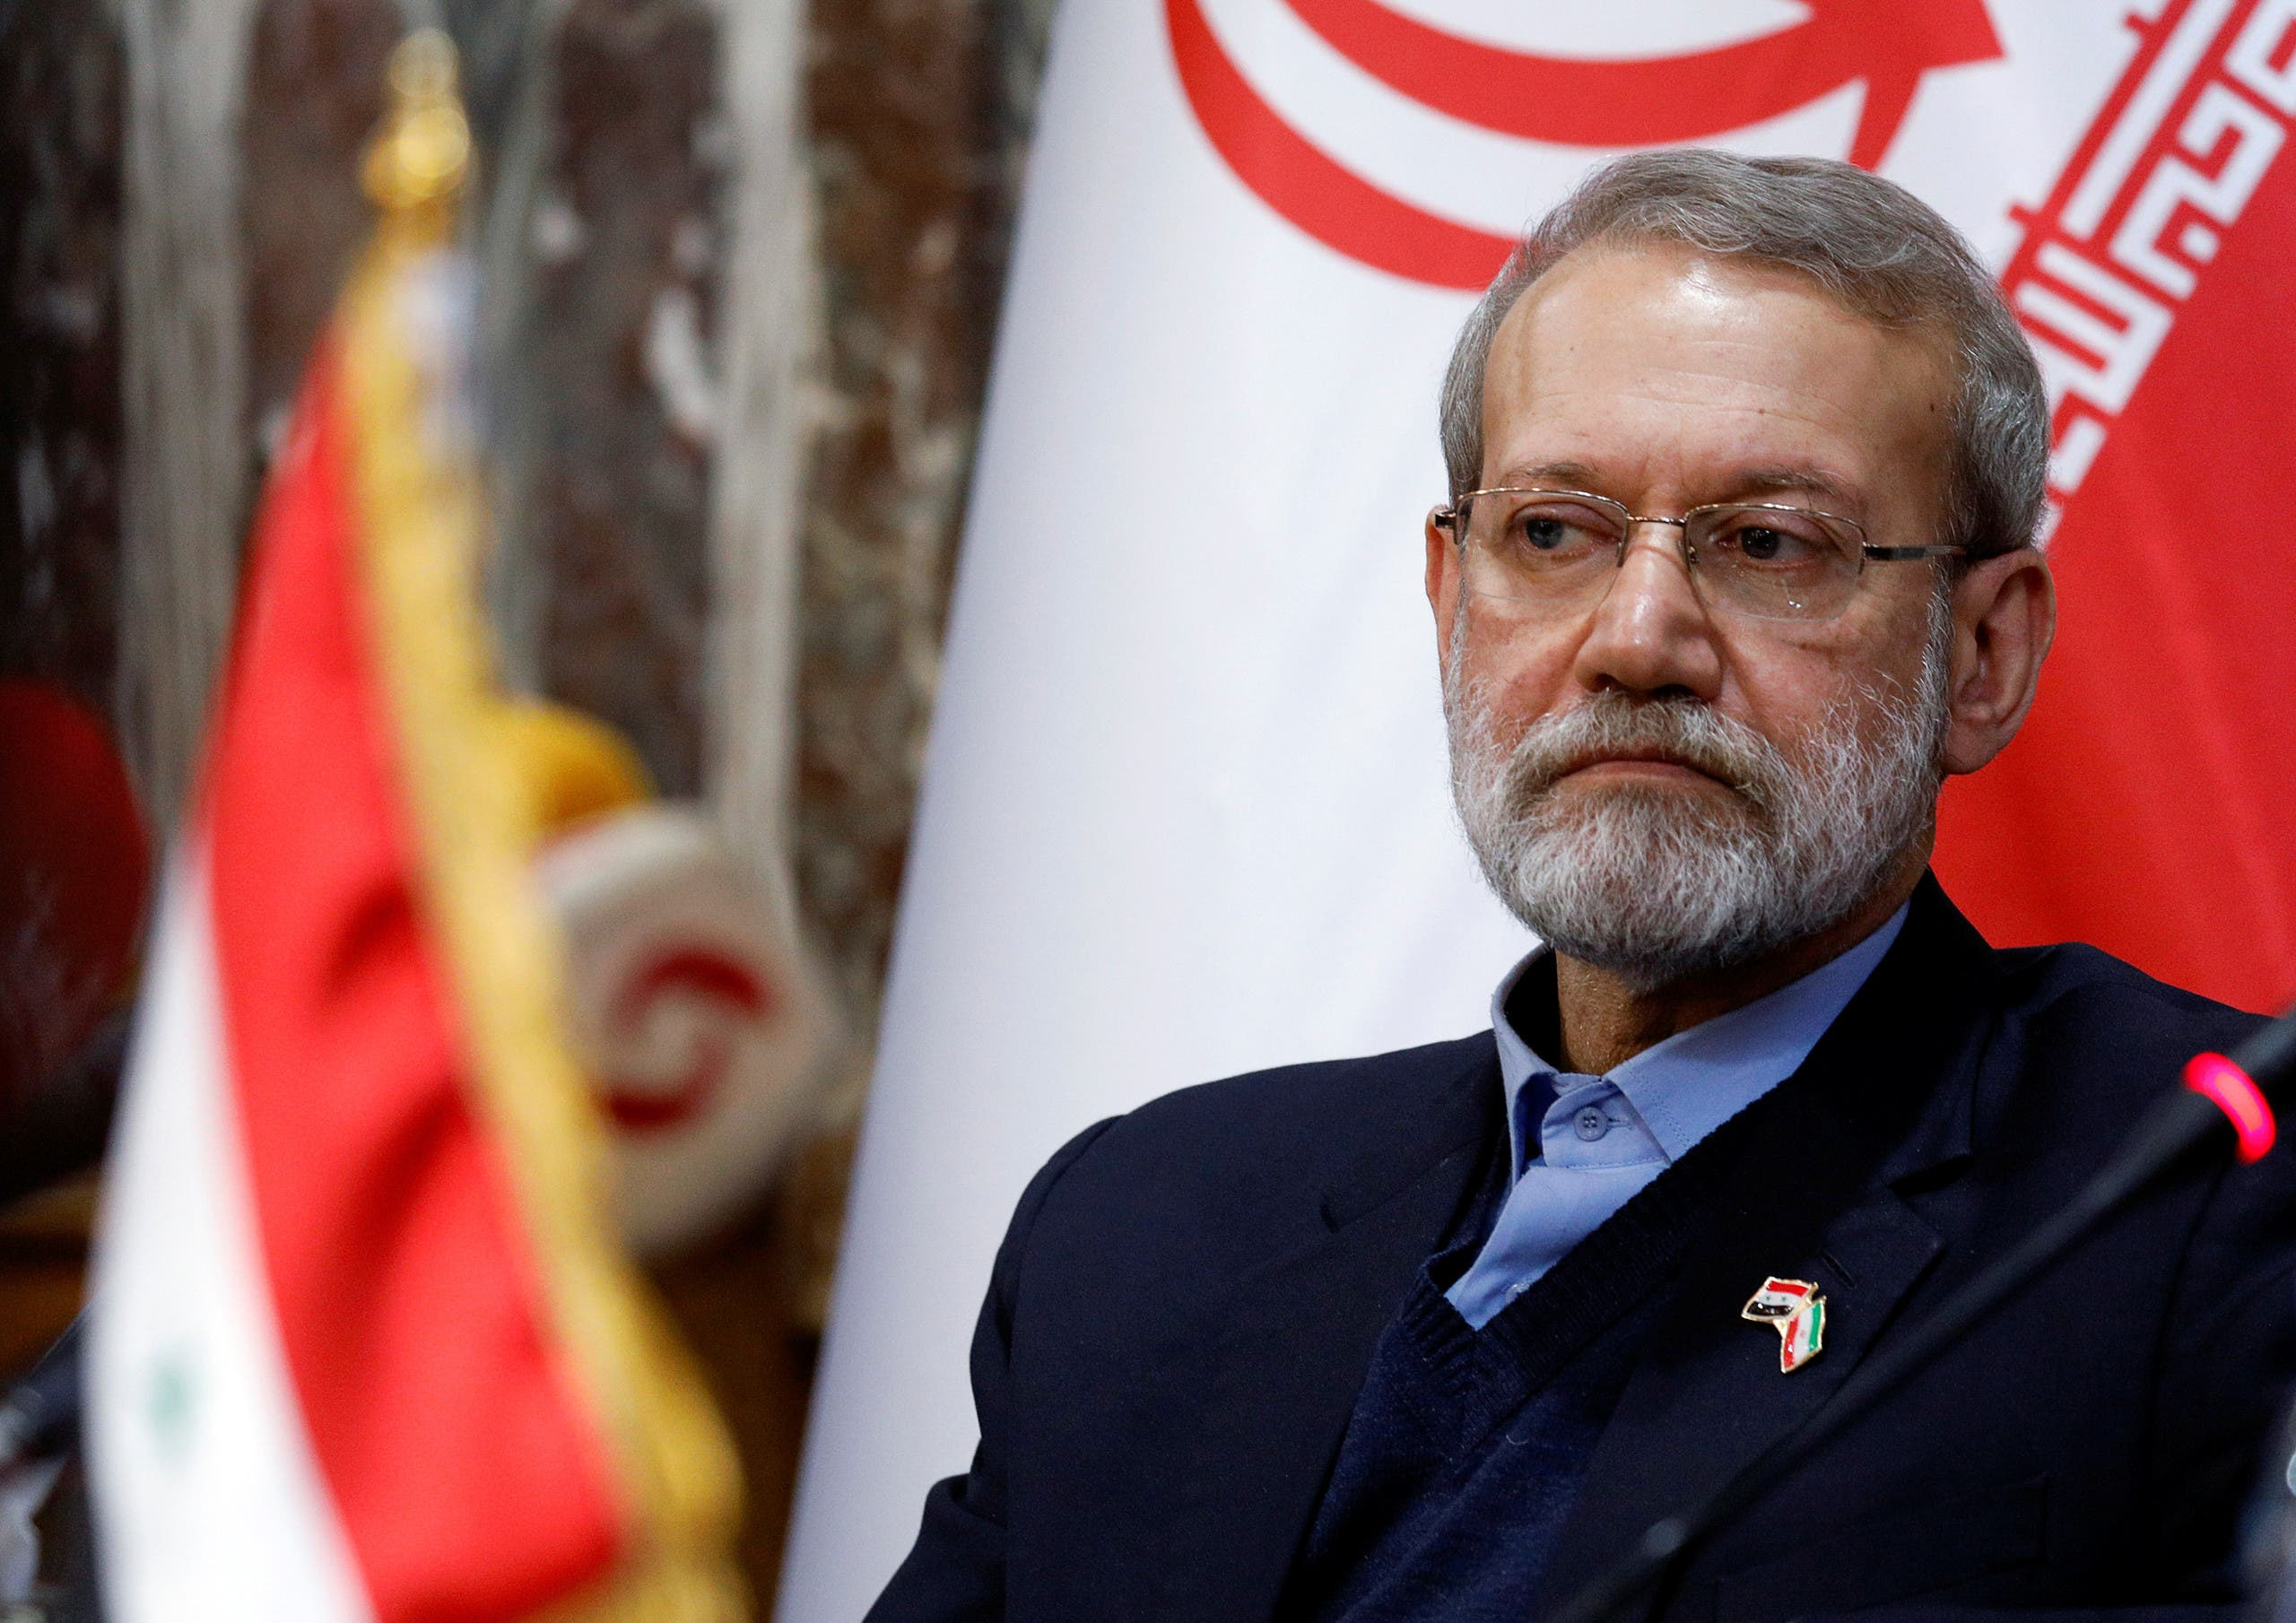 Iranian parliament speaker Ali Larijani attends a news conference in Damascus, Syria February 16, 2020. (Reuters)